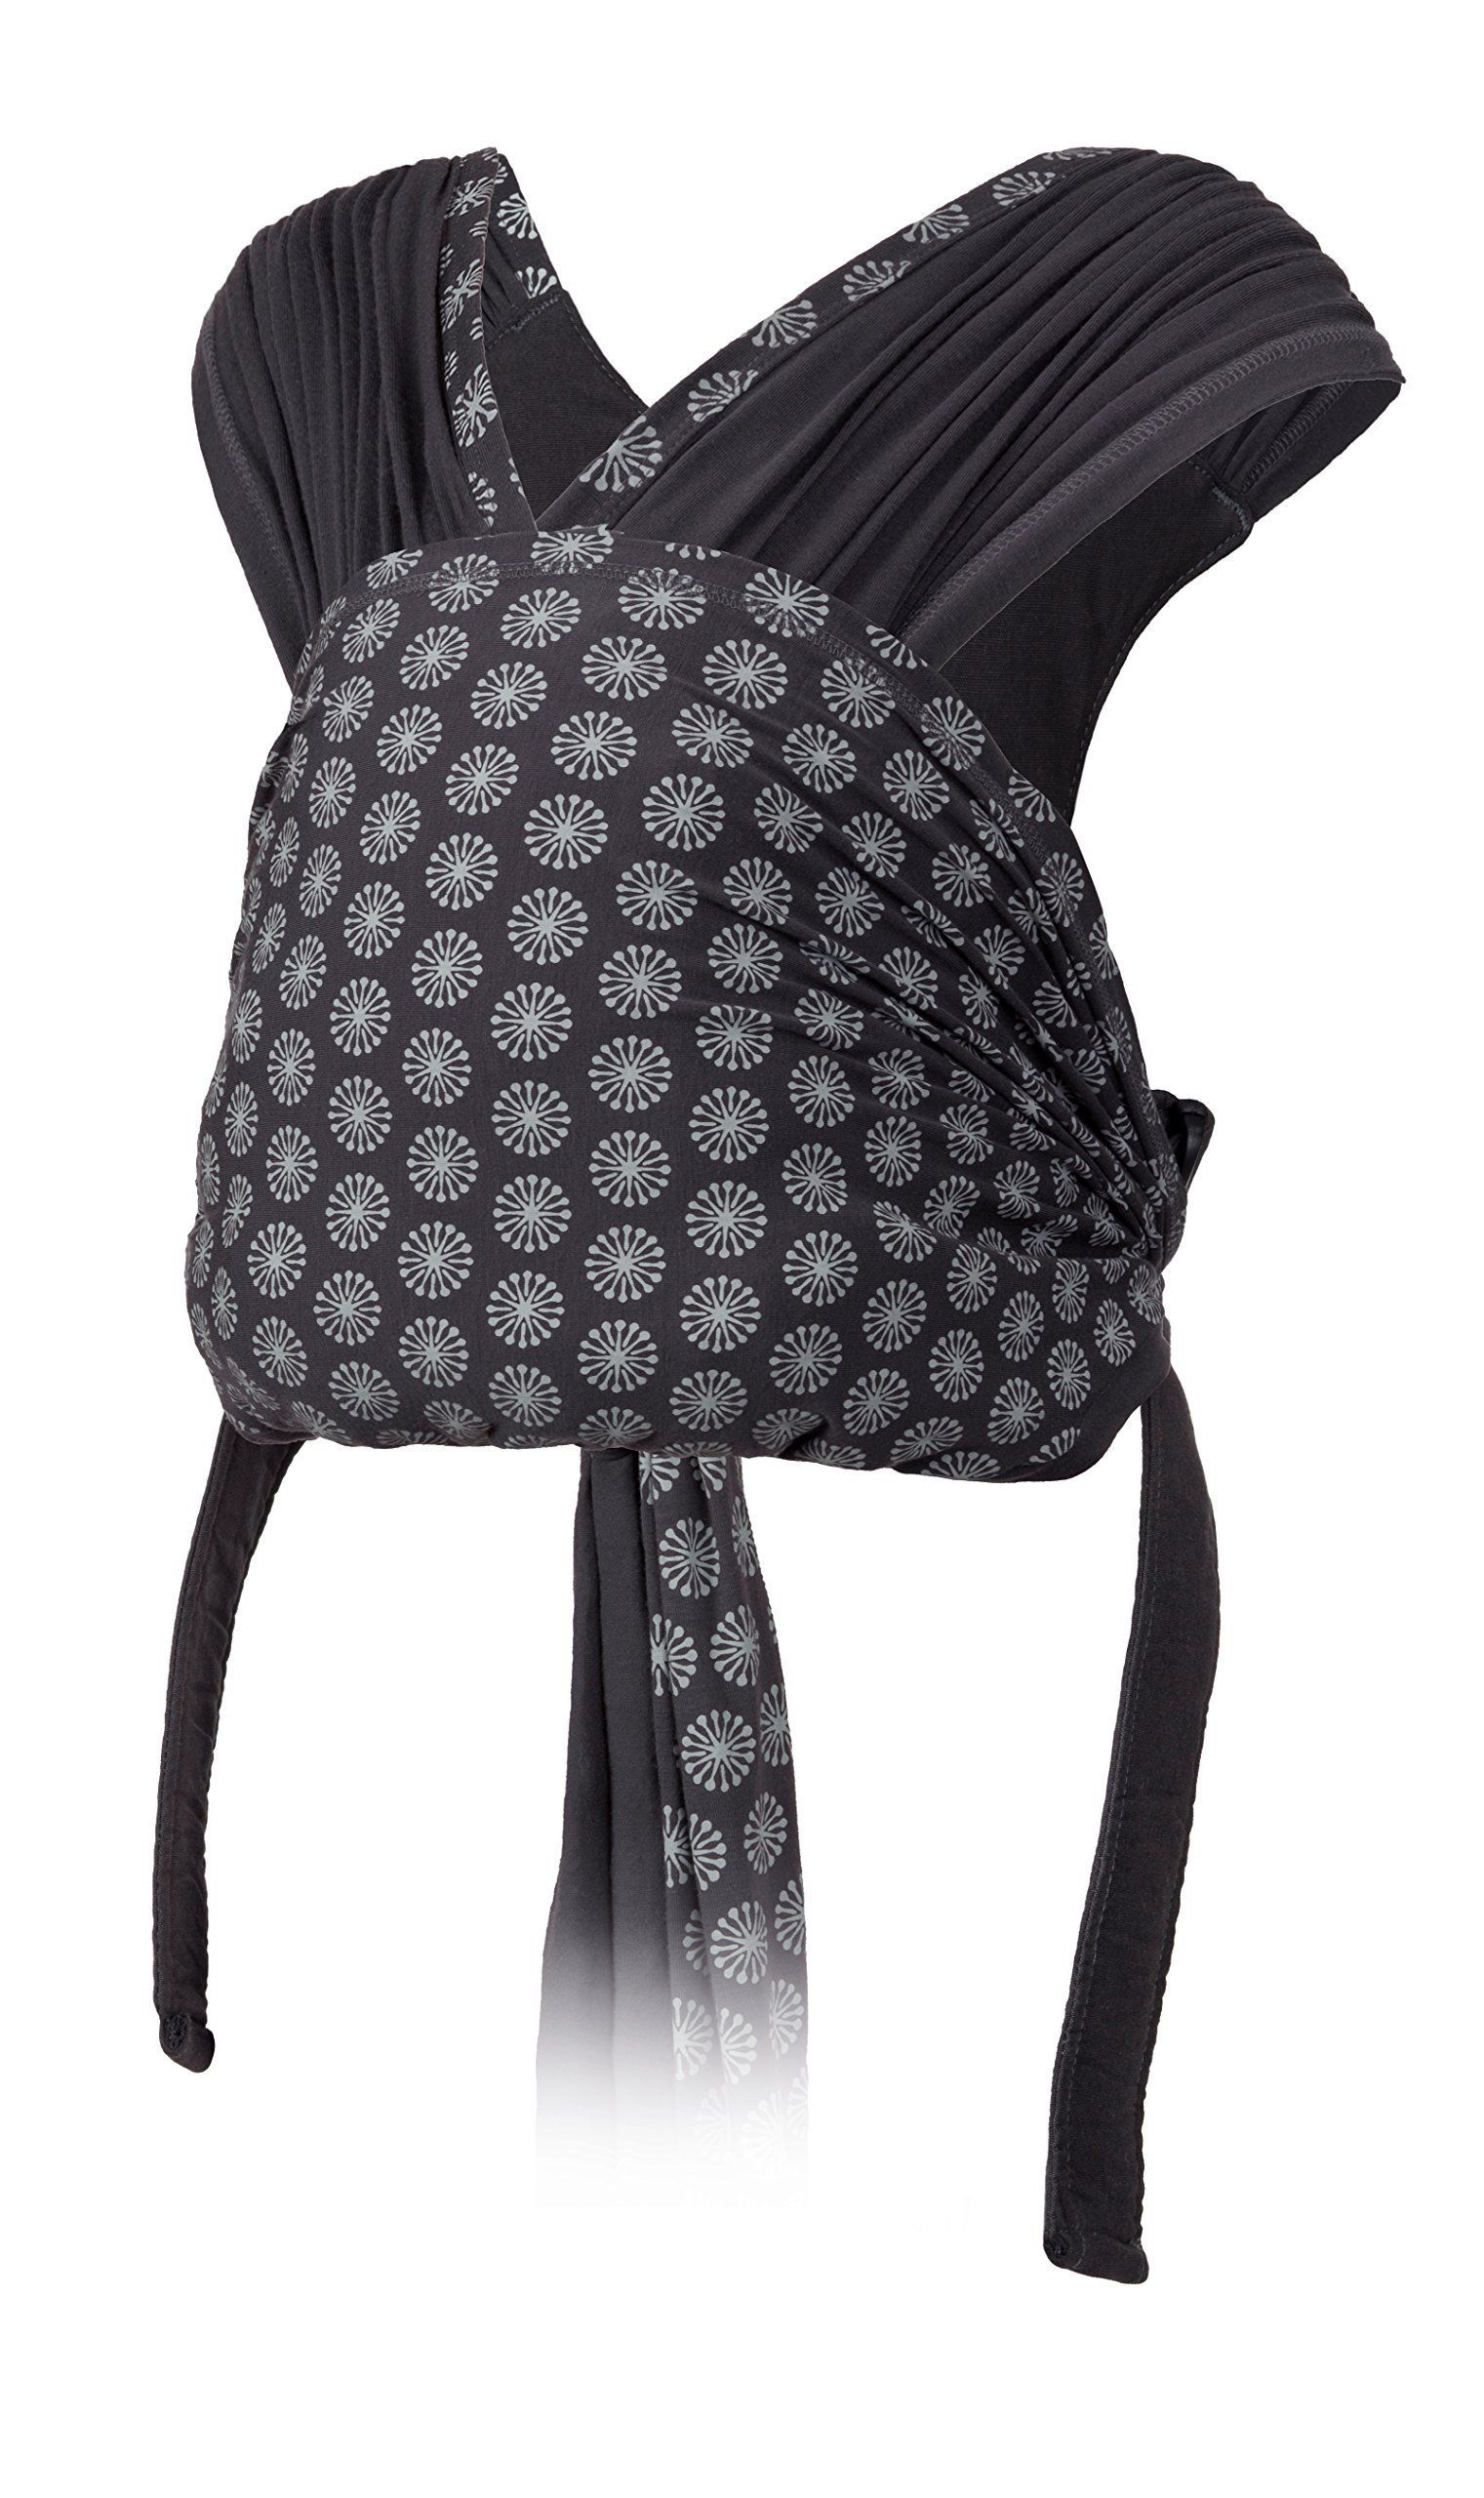 6d911837965 Infantino Together Pull-On Knit Baby Wrap Carrier 4 out of 5 stars via 87